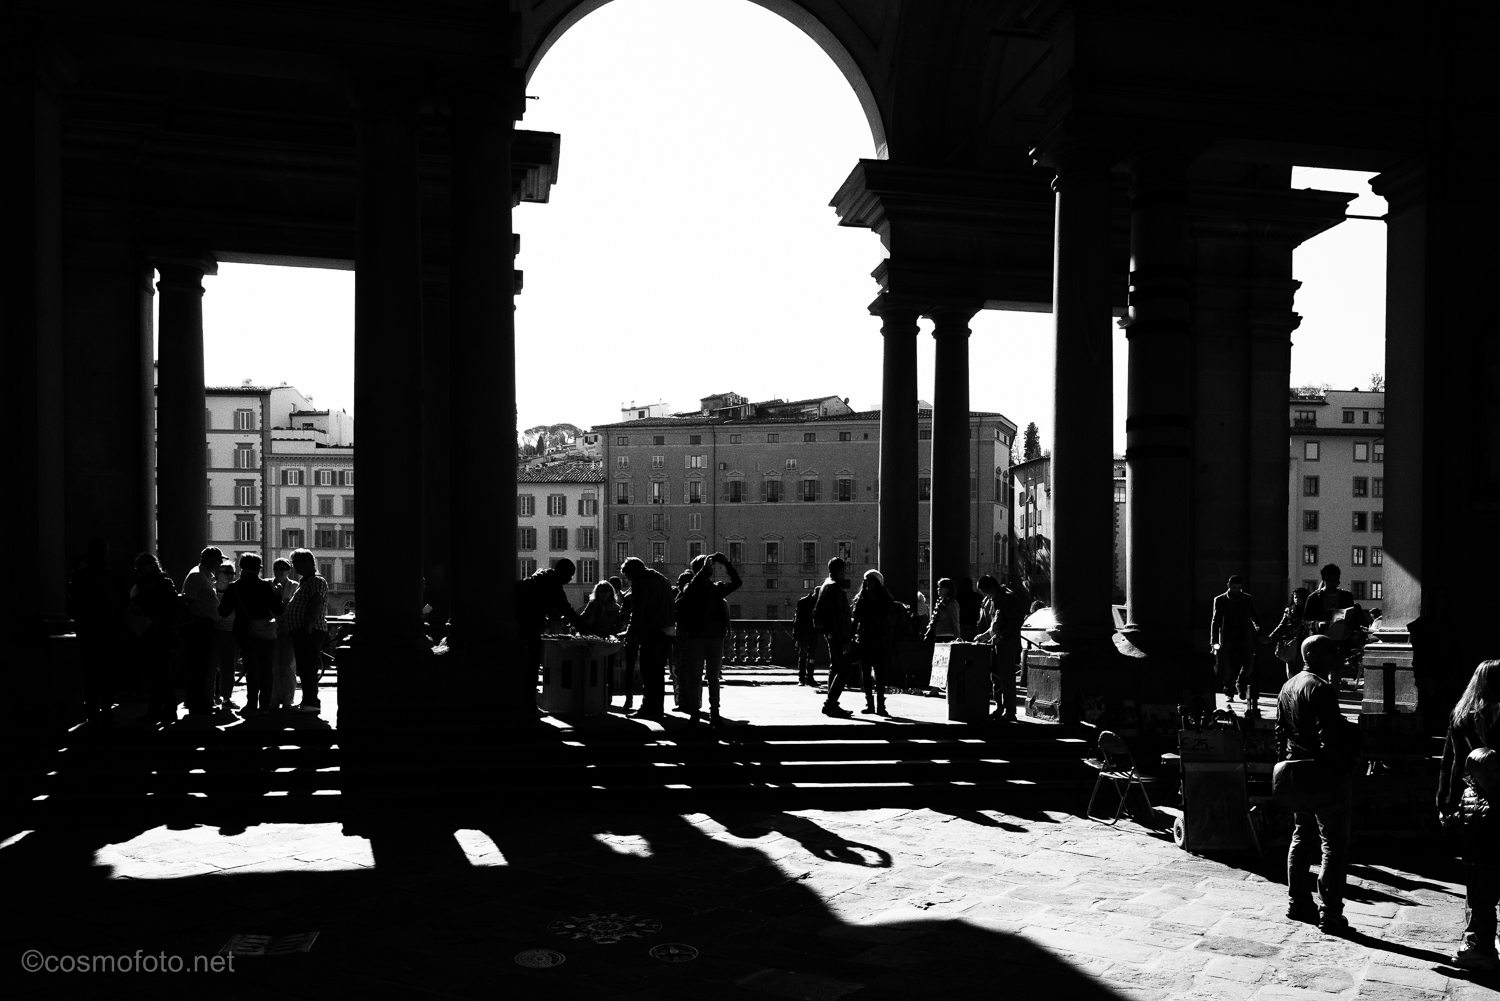 Another b/w photo from outside the Uffizi.